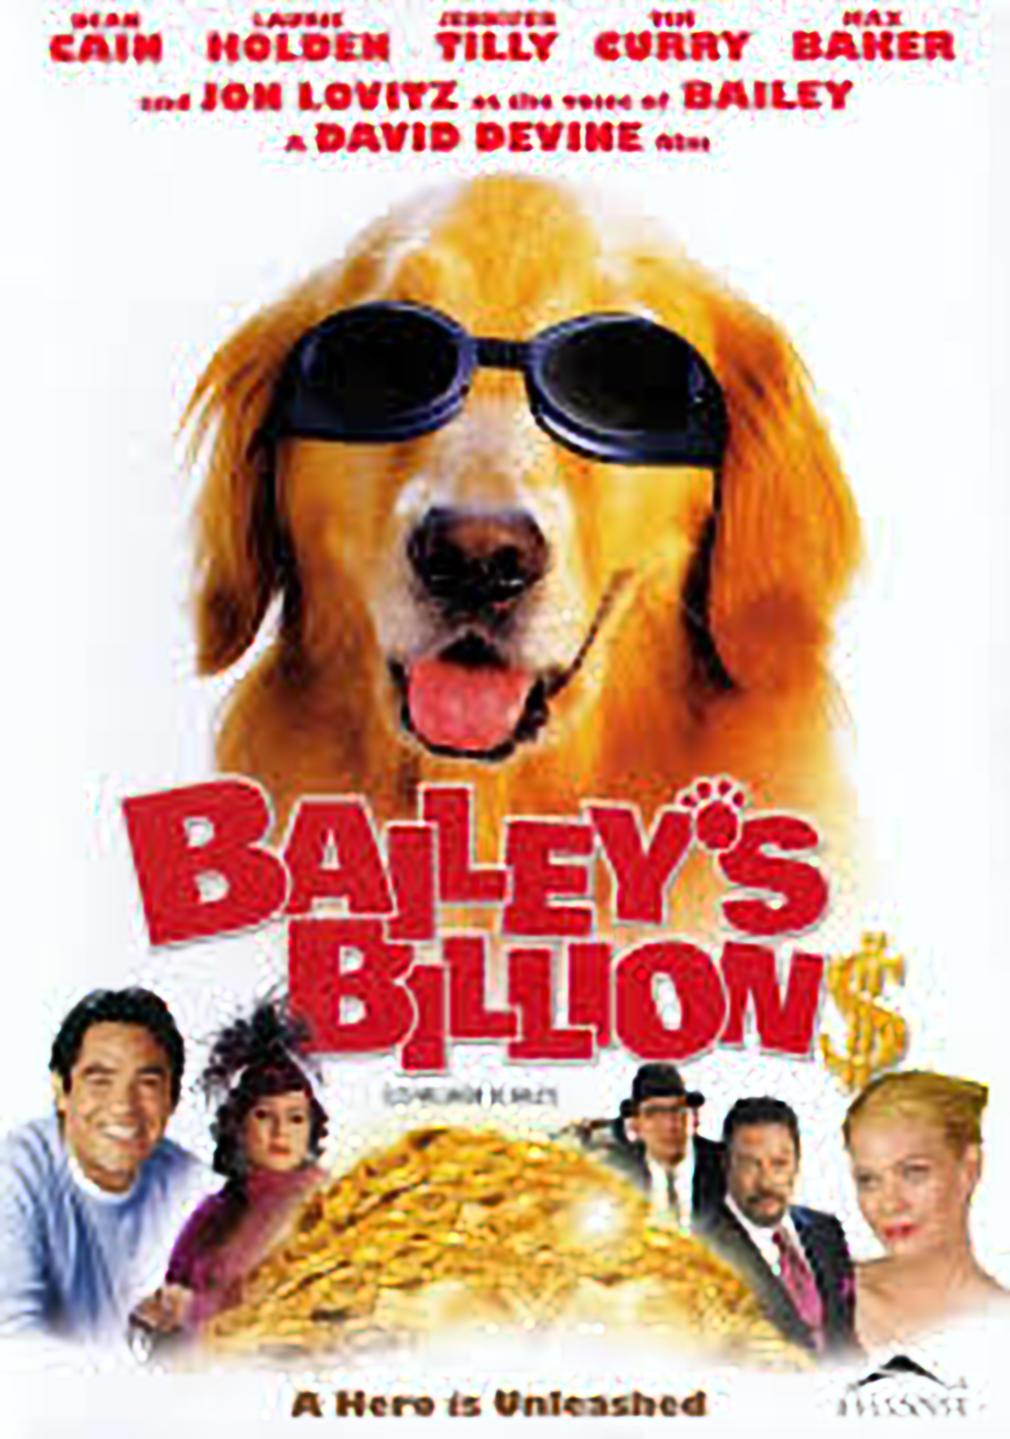 Bailey's Billion$ (movie) | Movienowbox197189 Wiki | FANDOM